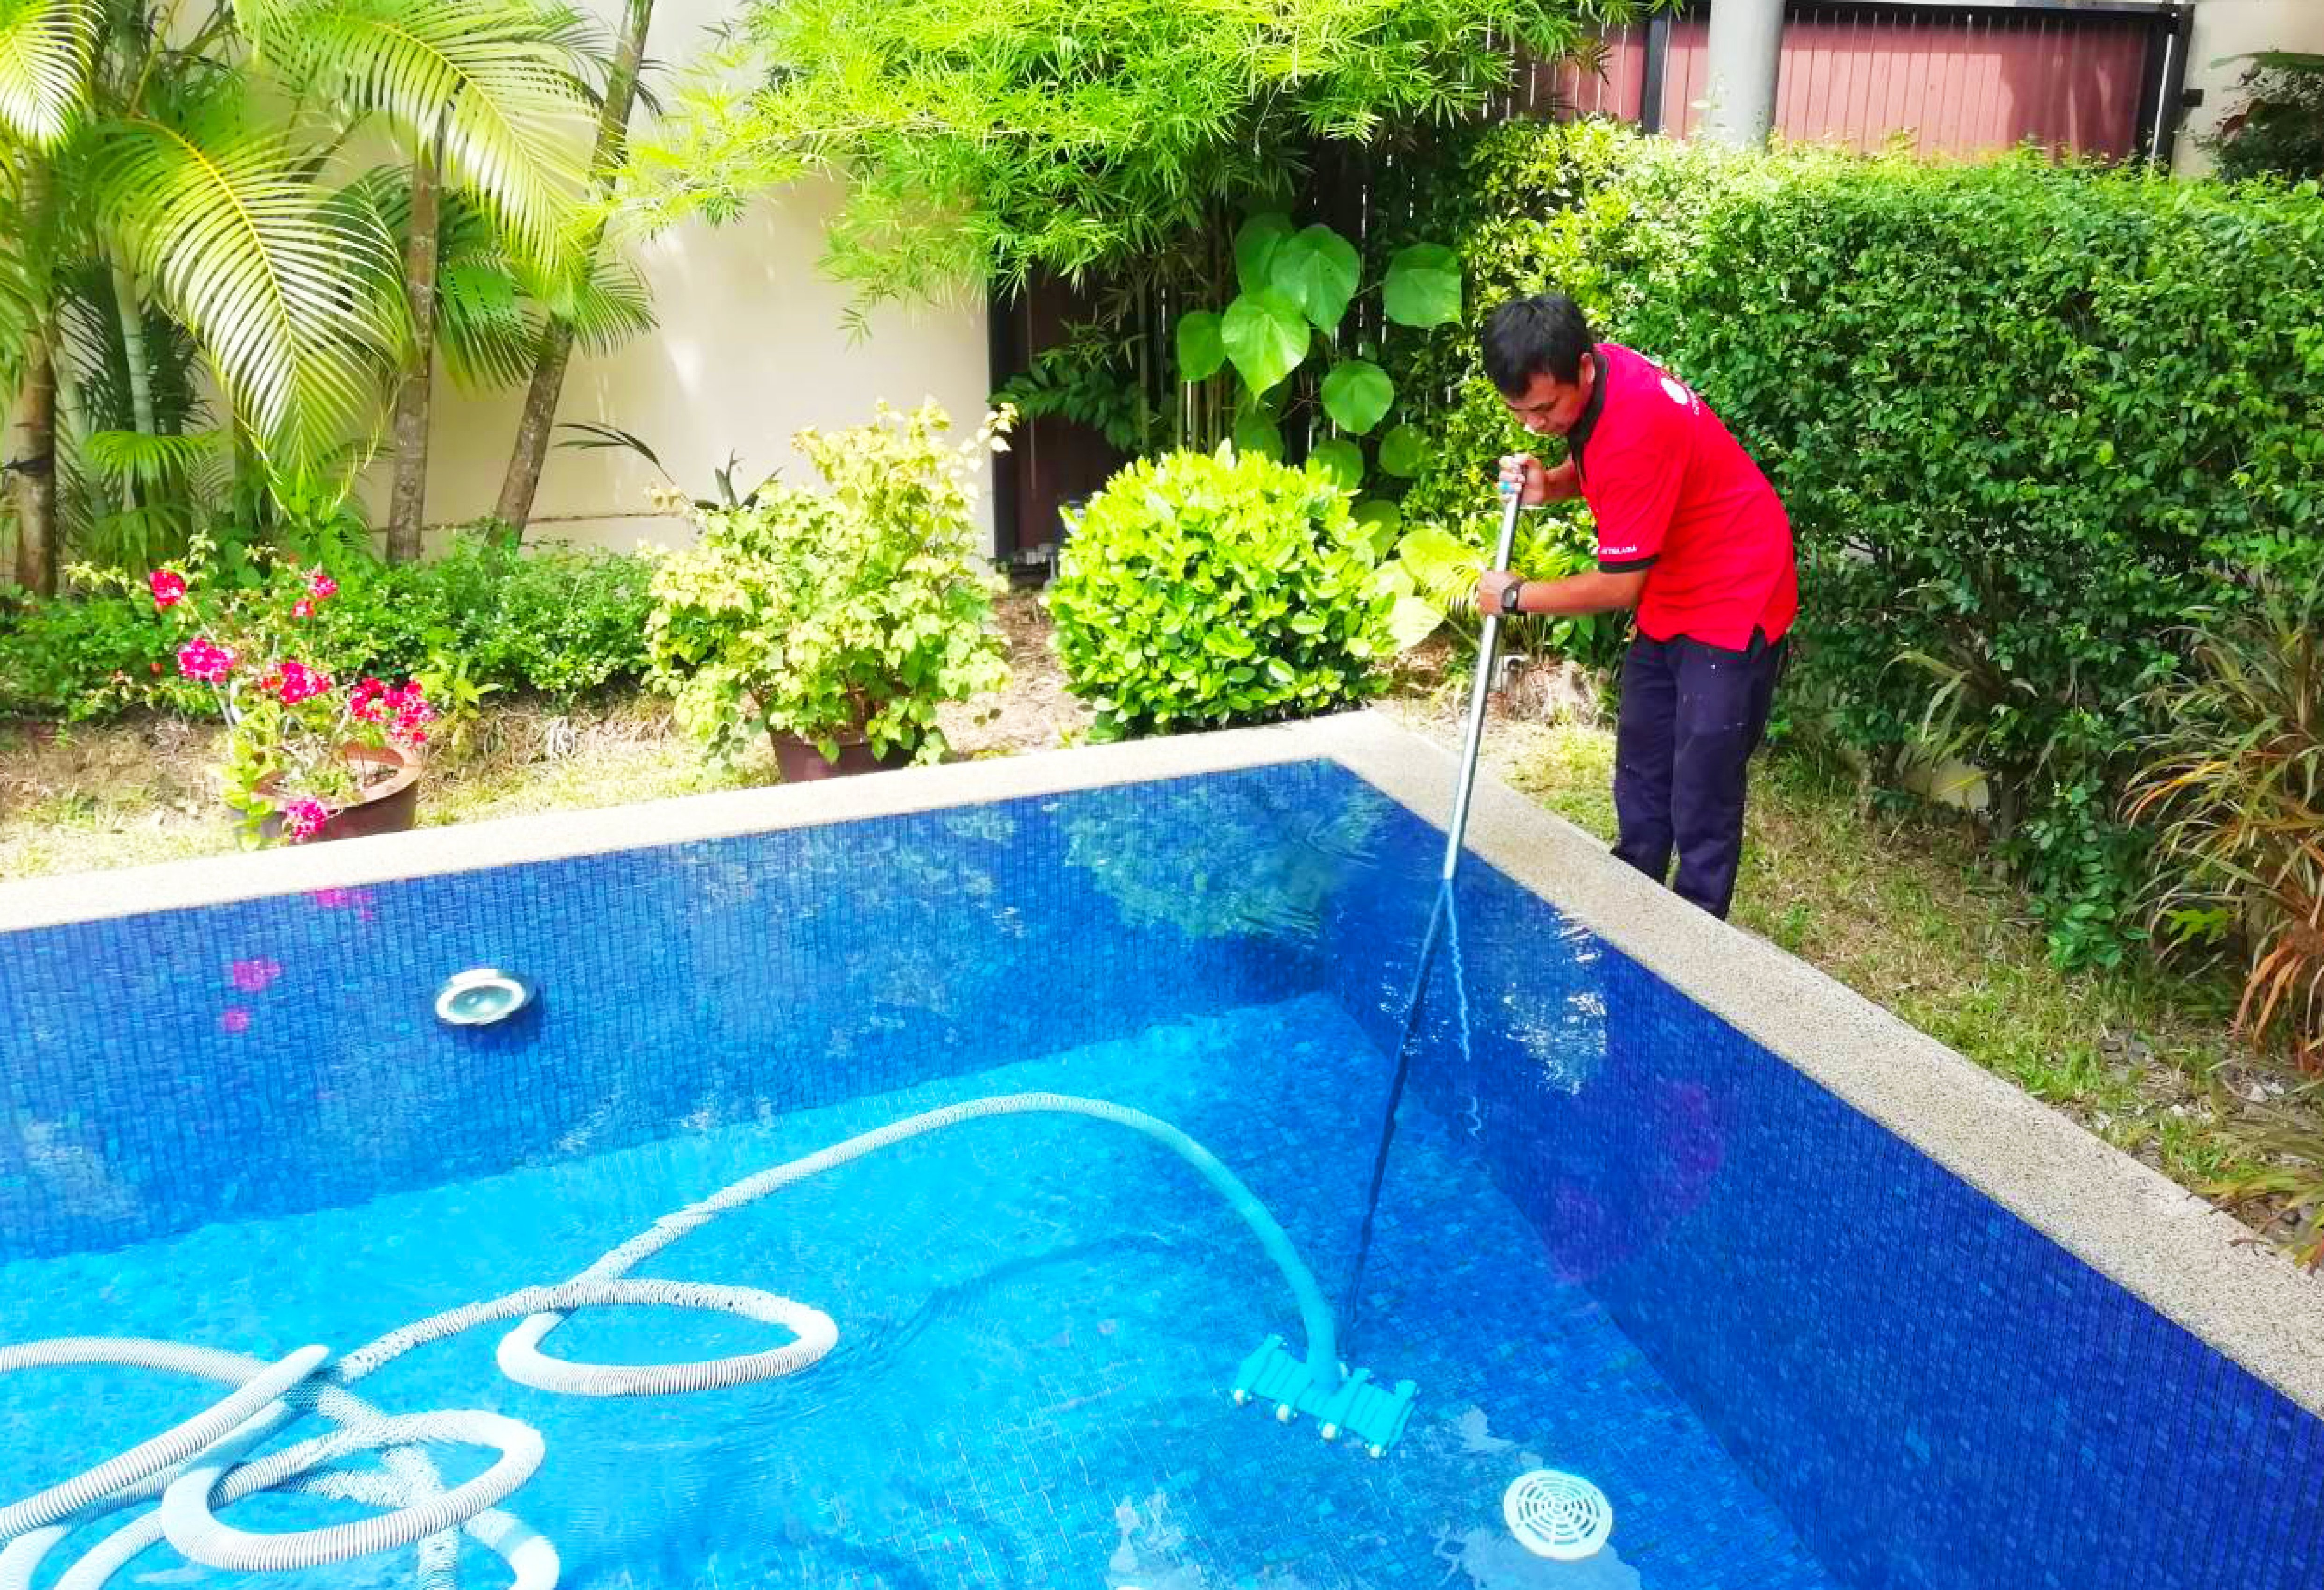 Chattha Property Management Phuket - Houskeeping gardening pool cleaning technicial (3)